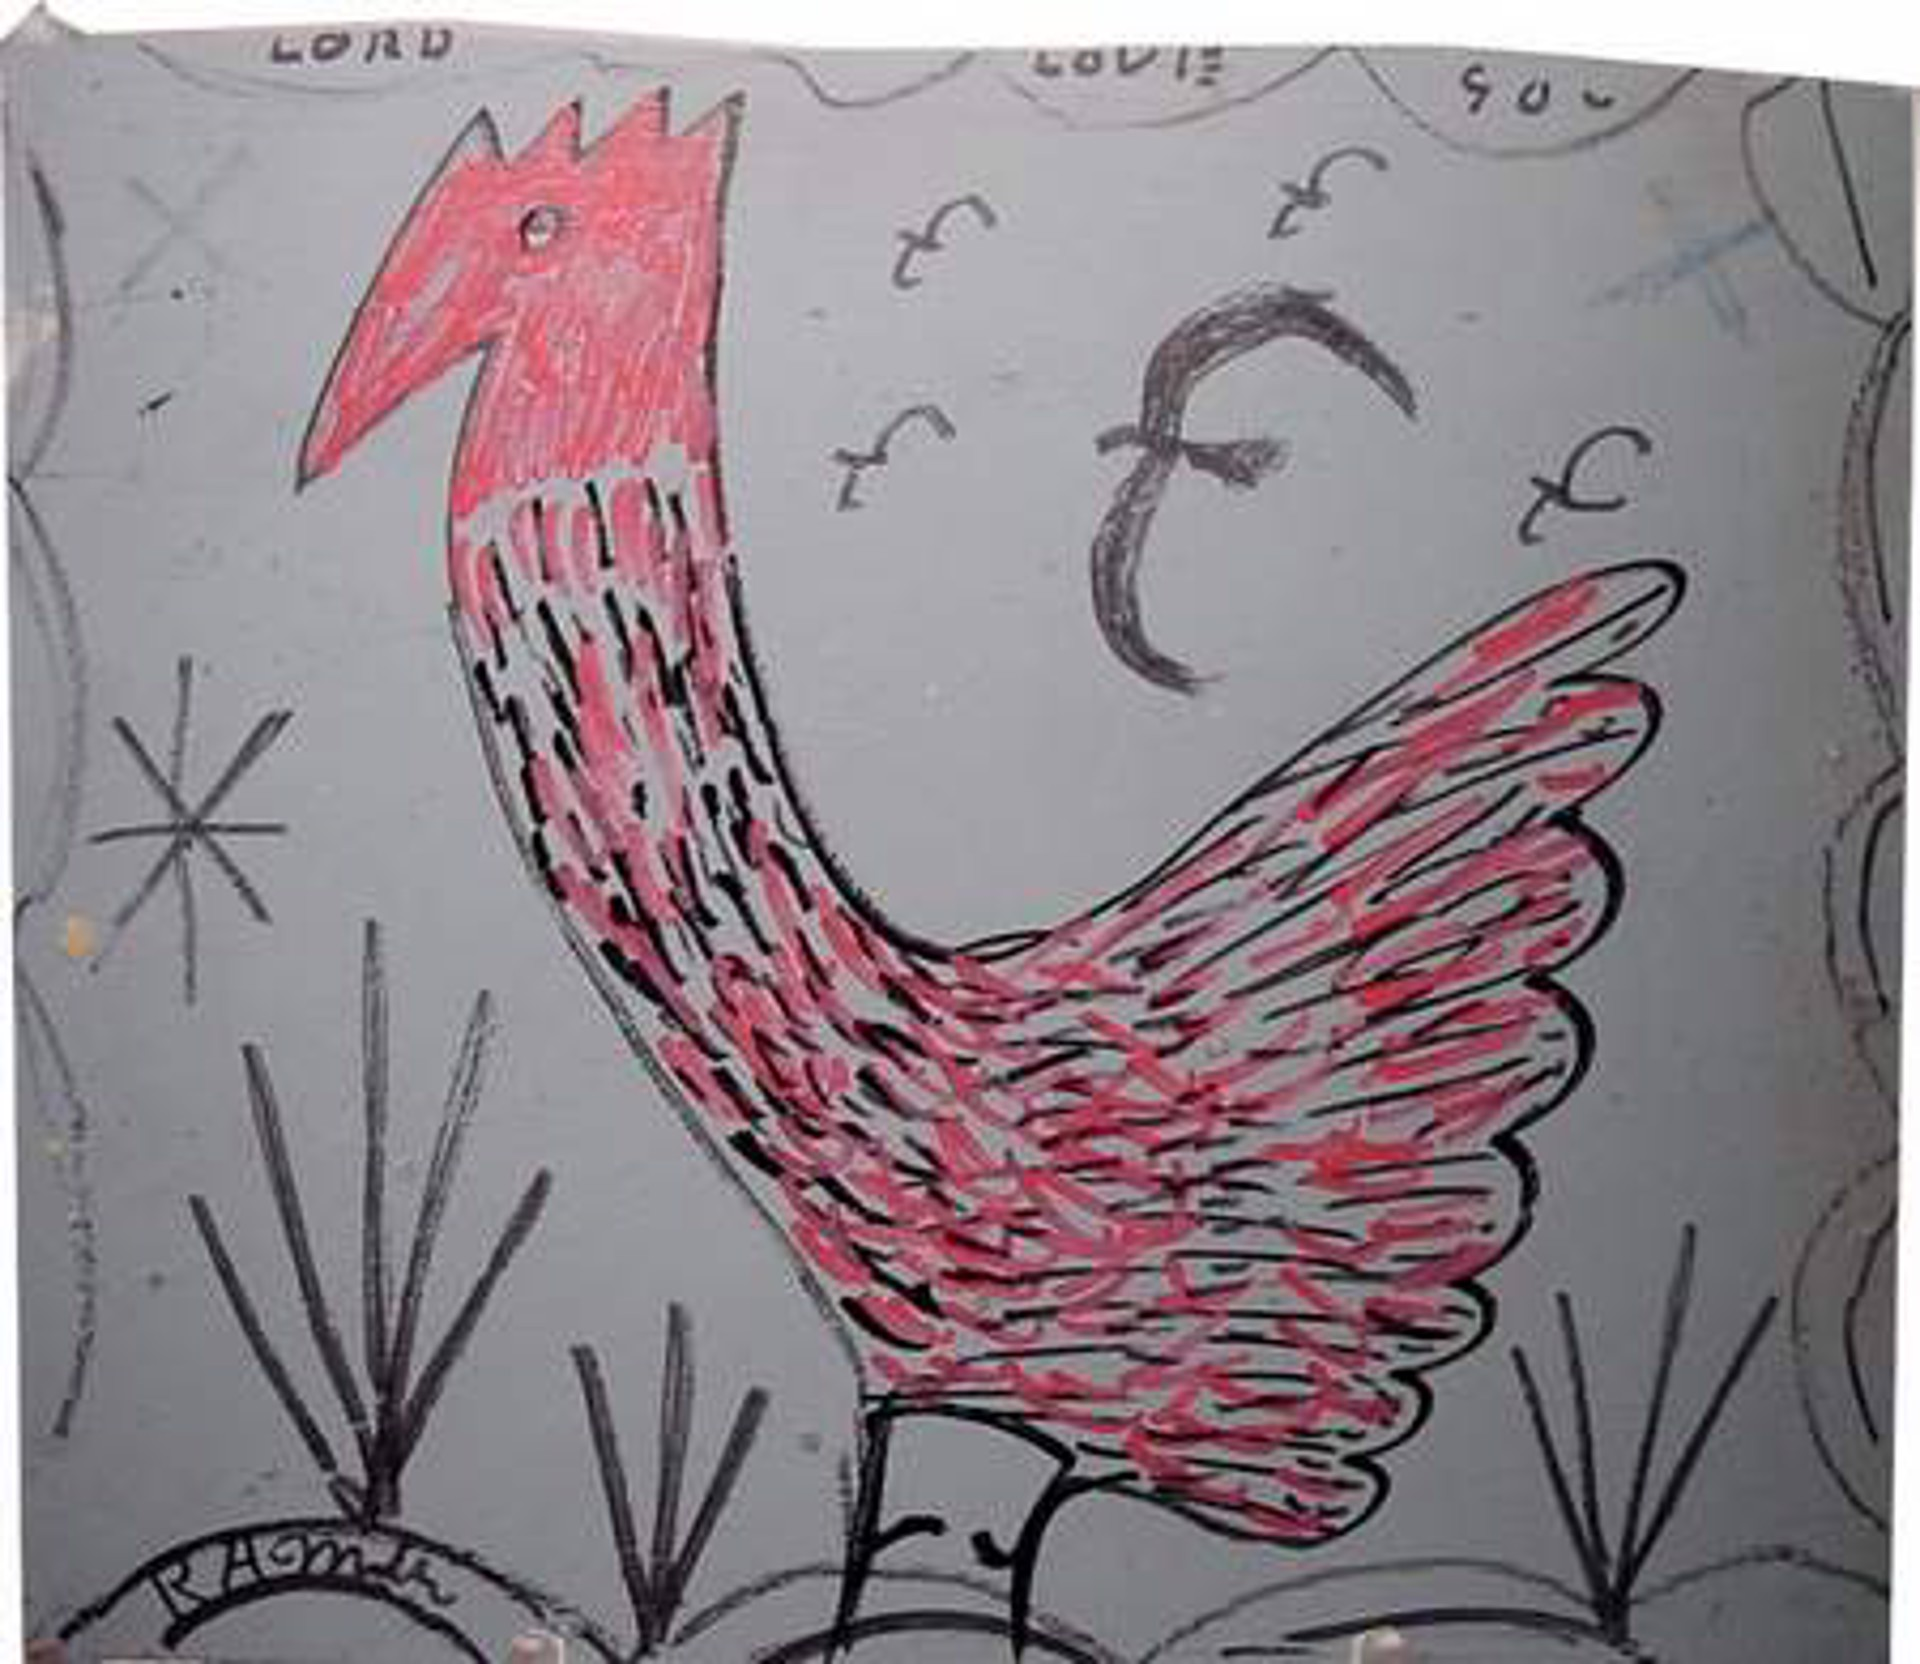 Red-headed Rooster with Bird by R.A. Miller